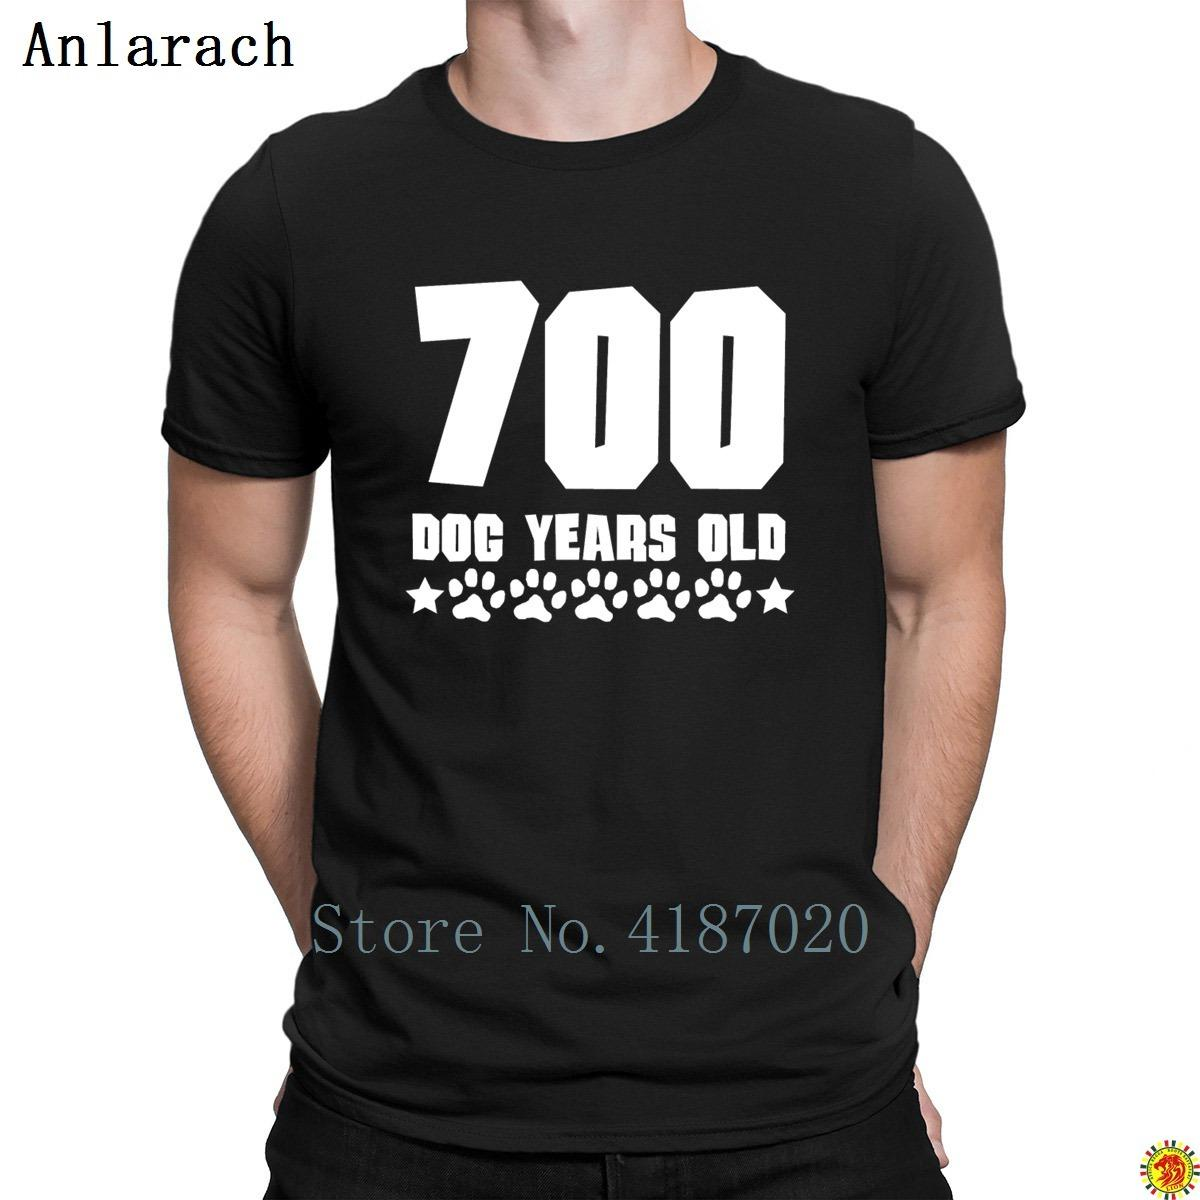 700 Dog Years Old Funny 100th Birthday Tshirt Creative Round Collar Summer Gents MenS Family Fitness Breathable Formal Tee Shirt Of The Day Link